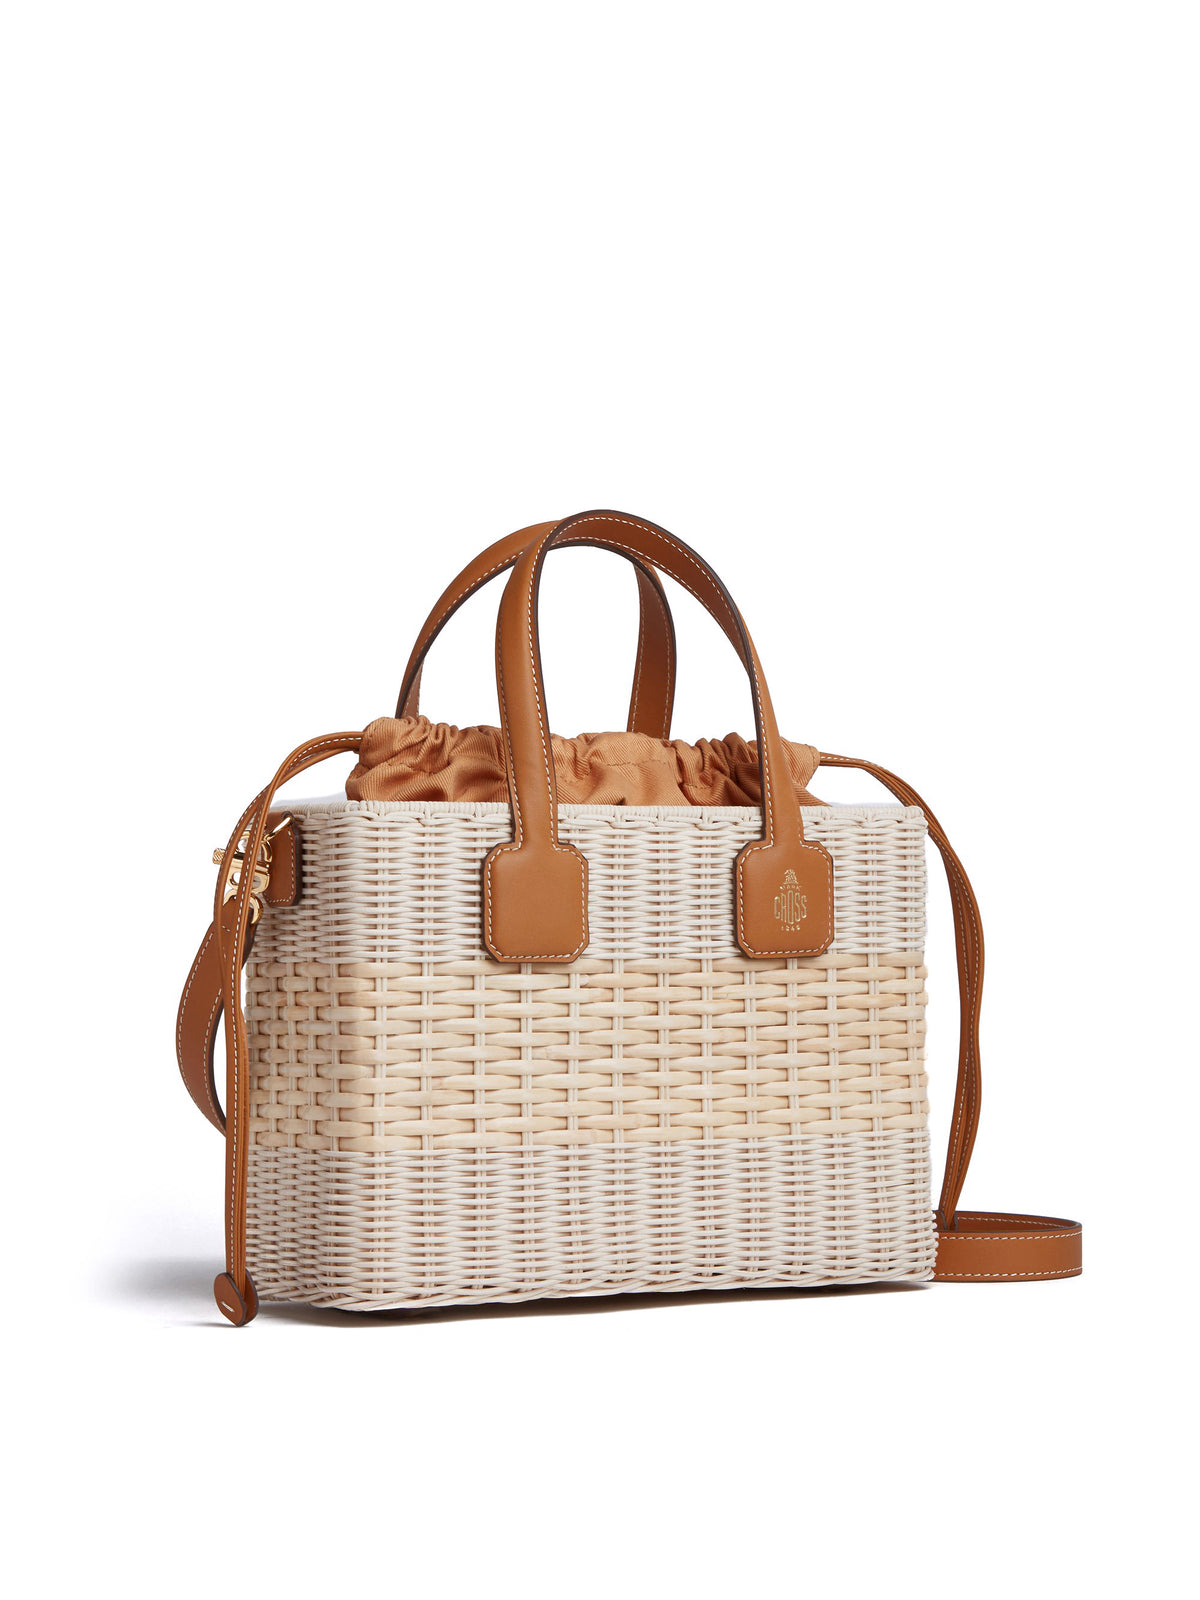 Manray Rattan & Leather Tote Bag Soft Calf Luggage / Bleach Rattan Side